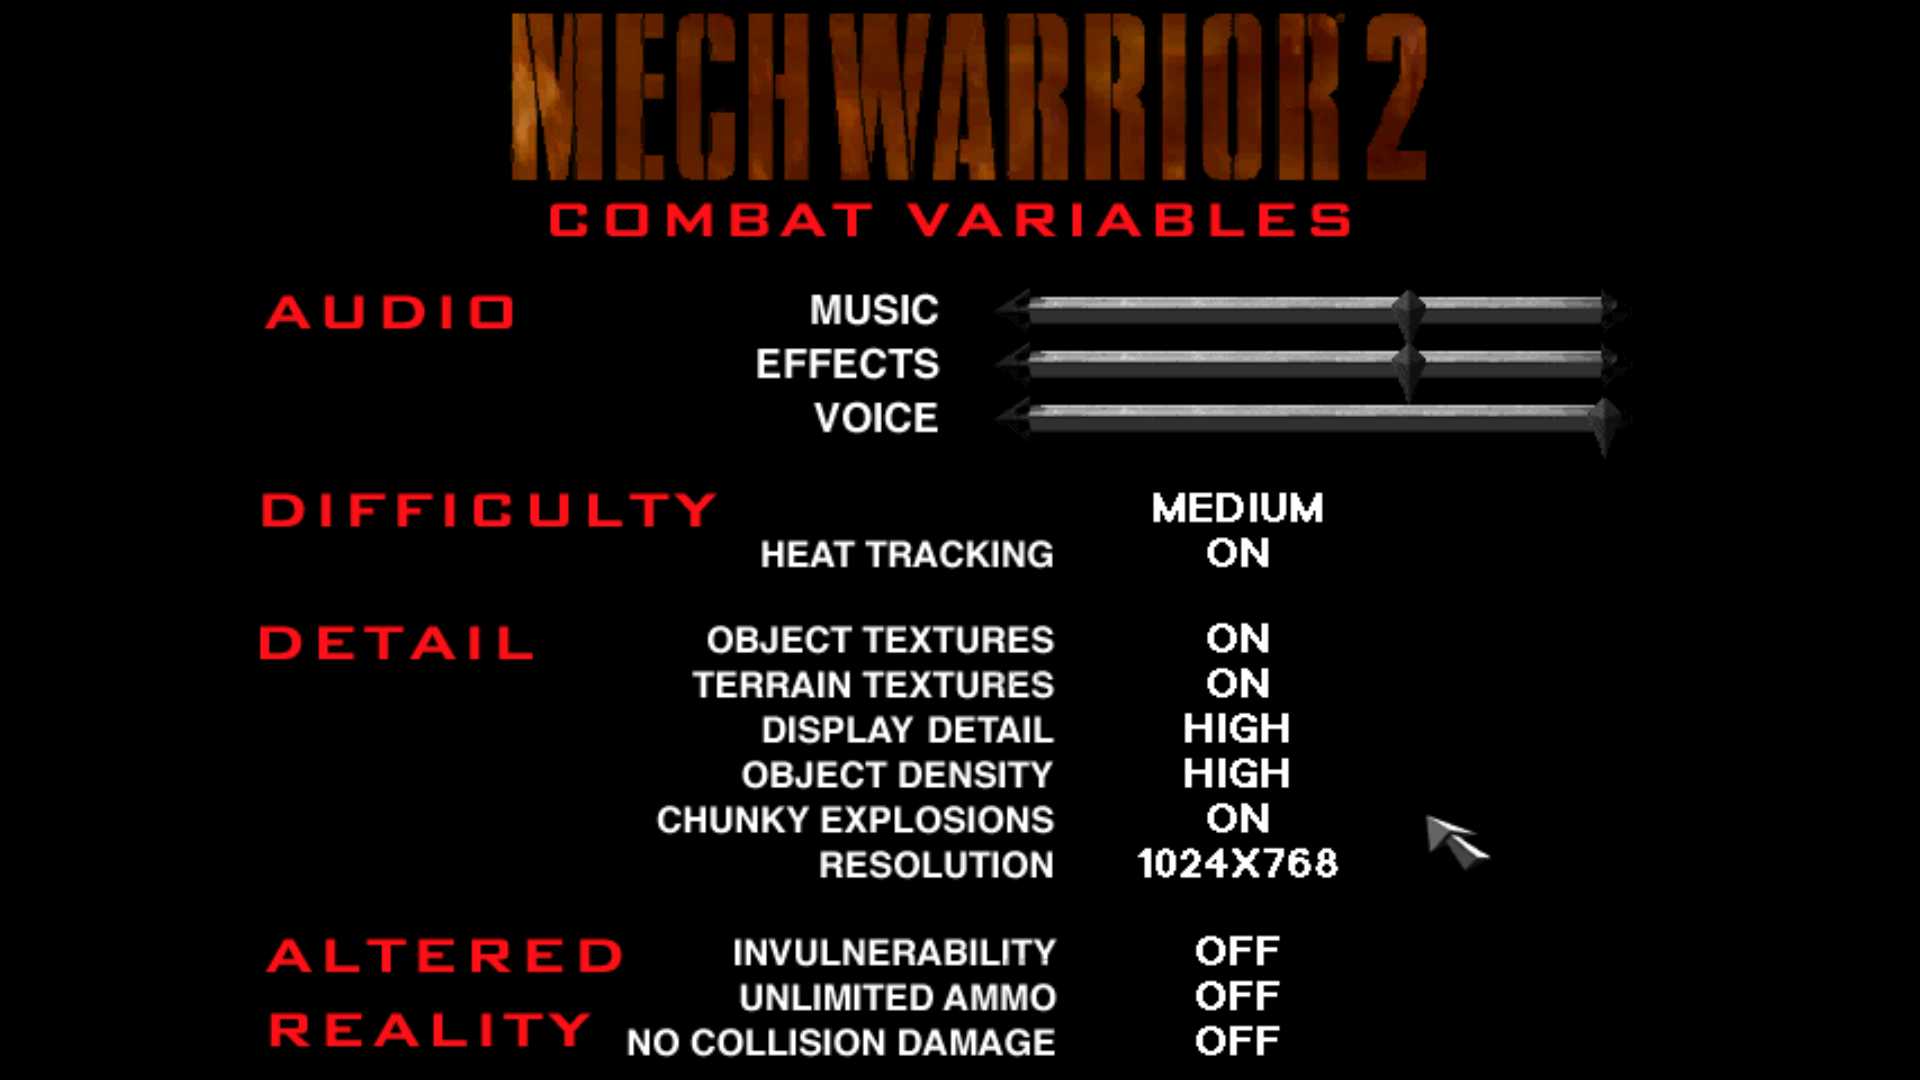 Linux Gaming: Mech Warrior 2 | ODROID Magazine